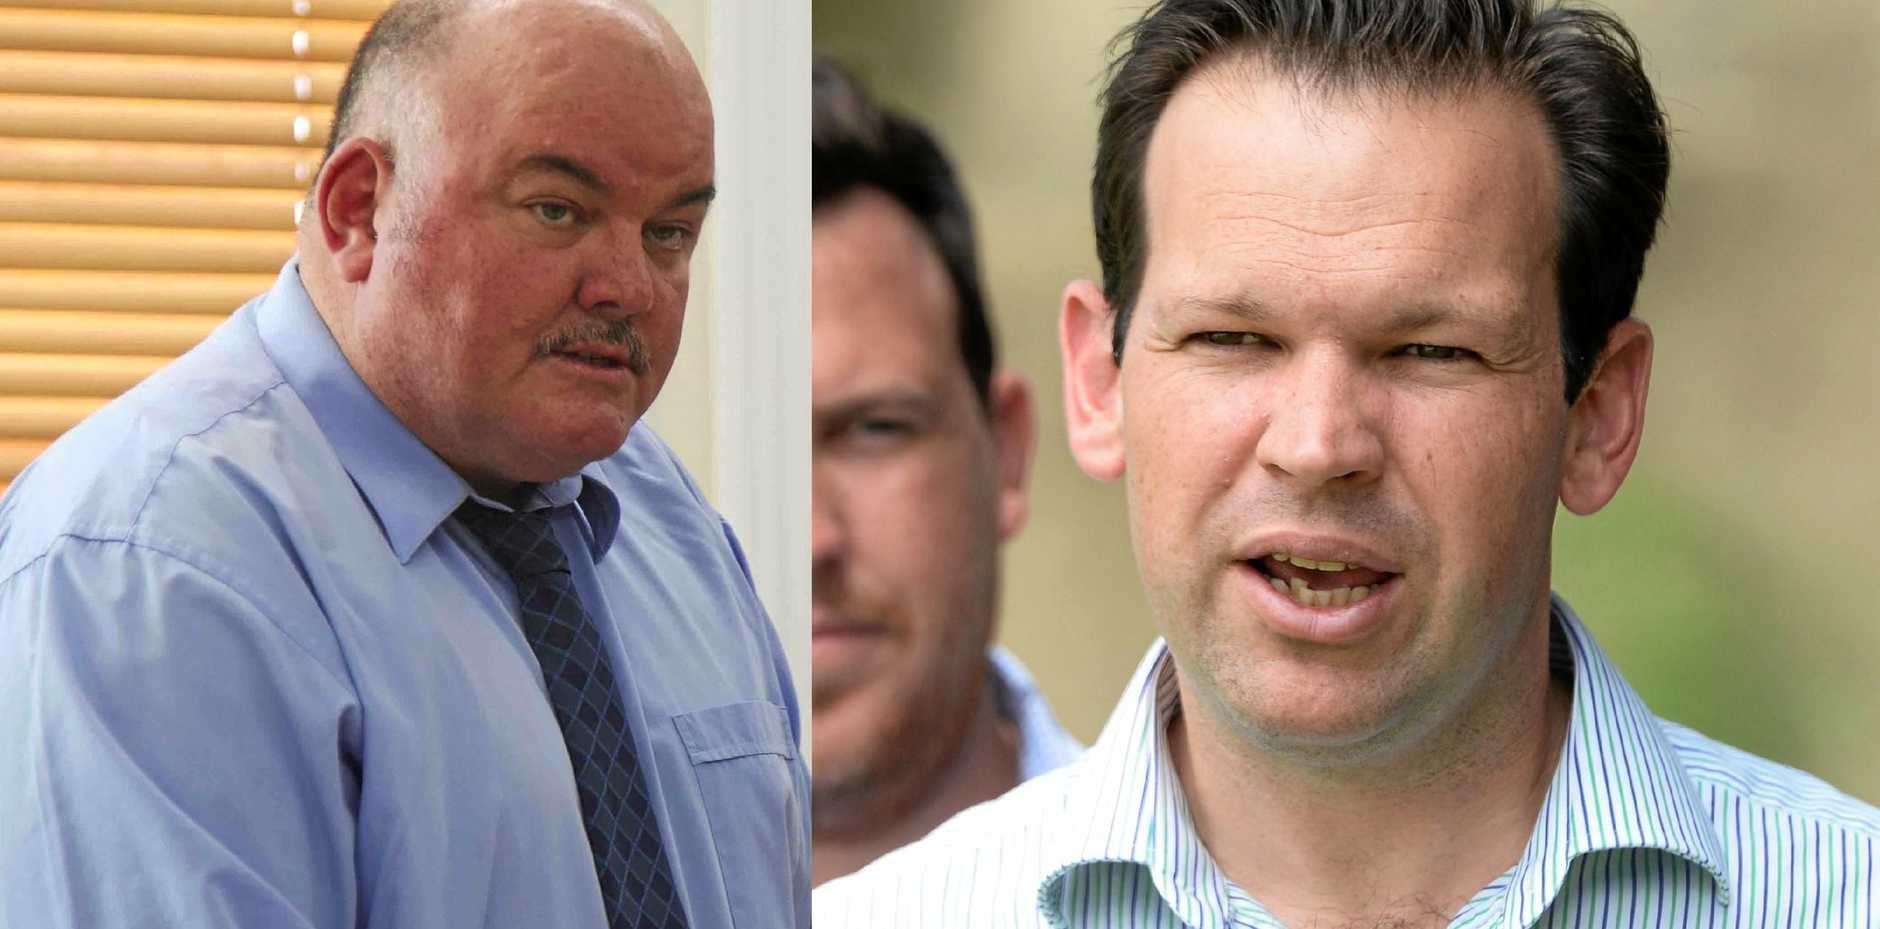 ALP candidate for Burdekin Mike Brunker (left) has been labelled 'naive' and 'misleading' by Minister for Resources and Northern Australia Matt Canavan (right).